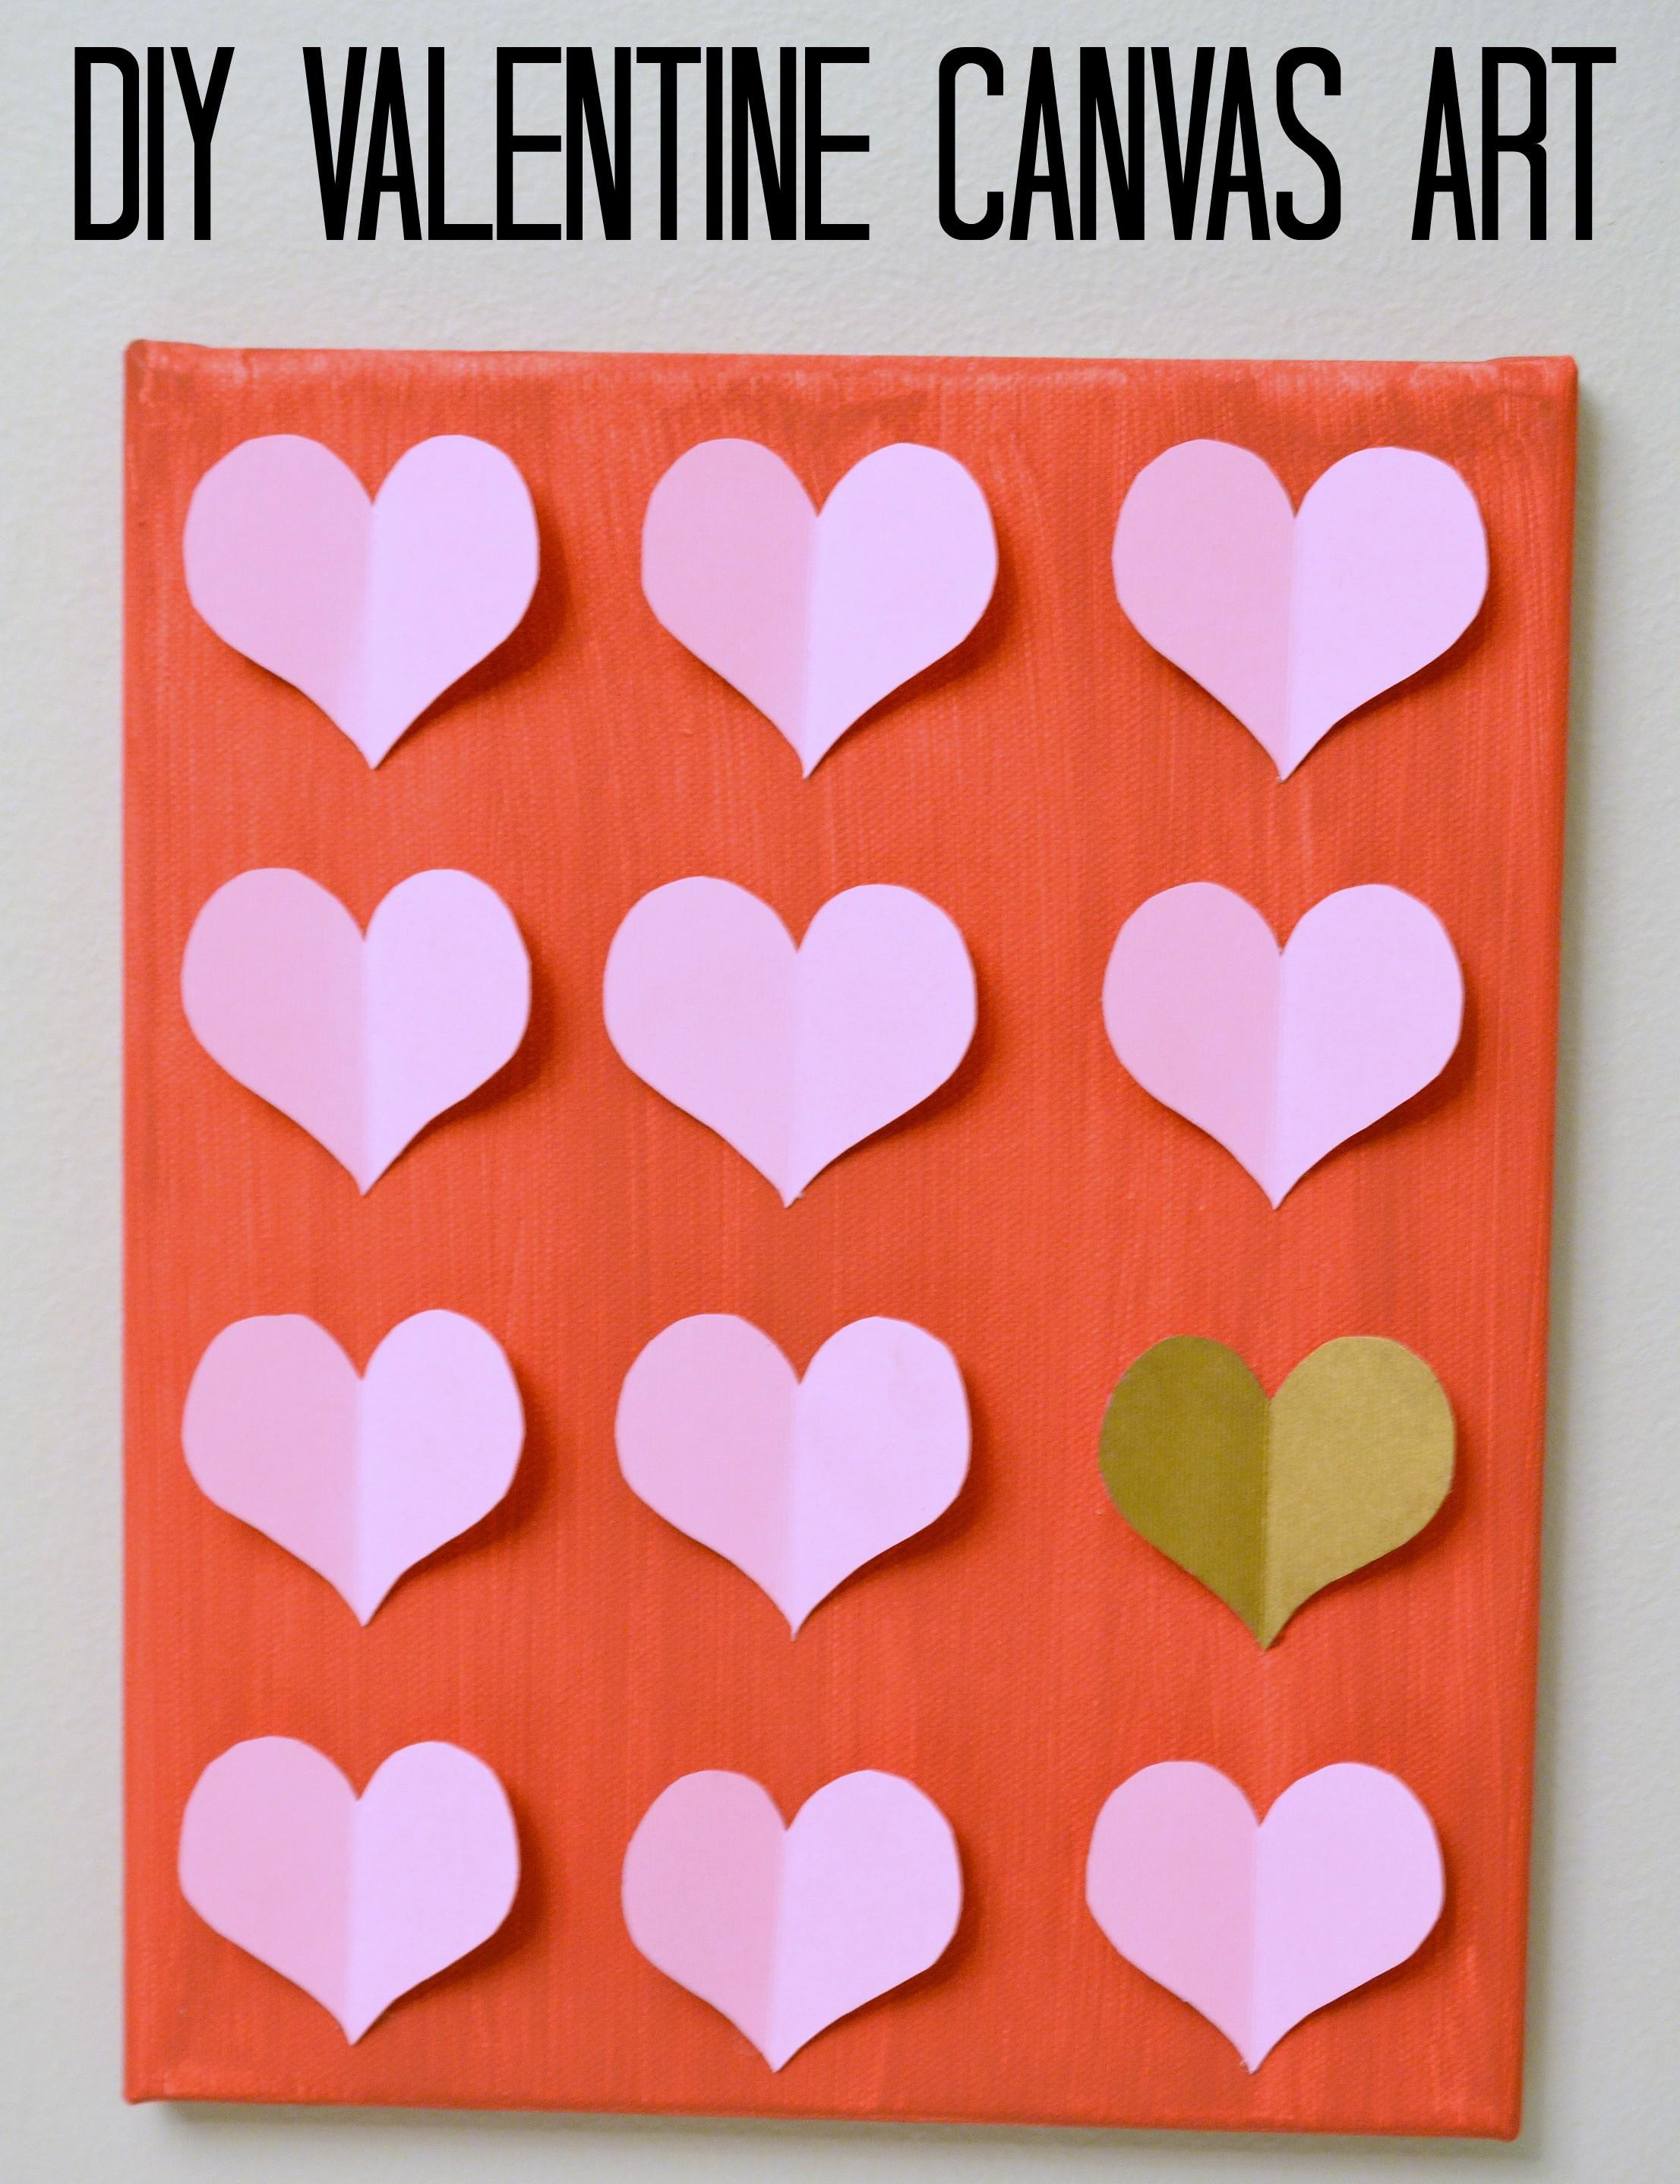 Diy Valentine Canvas Art Moms Without Answers